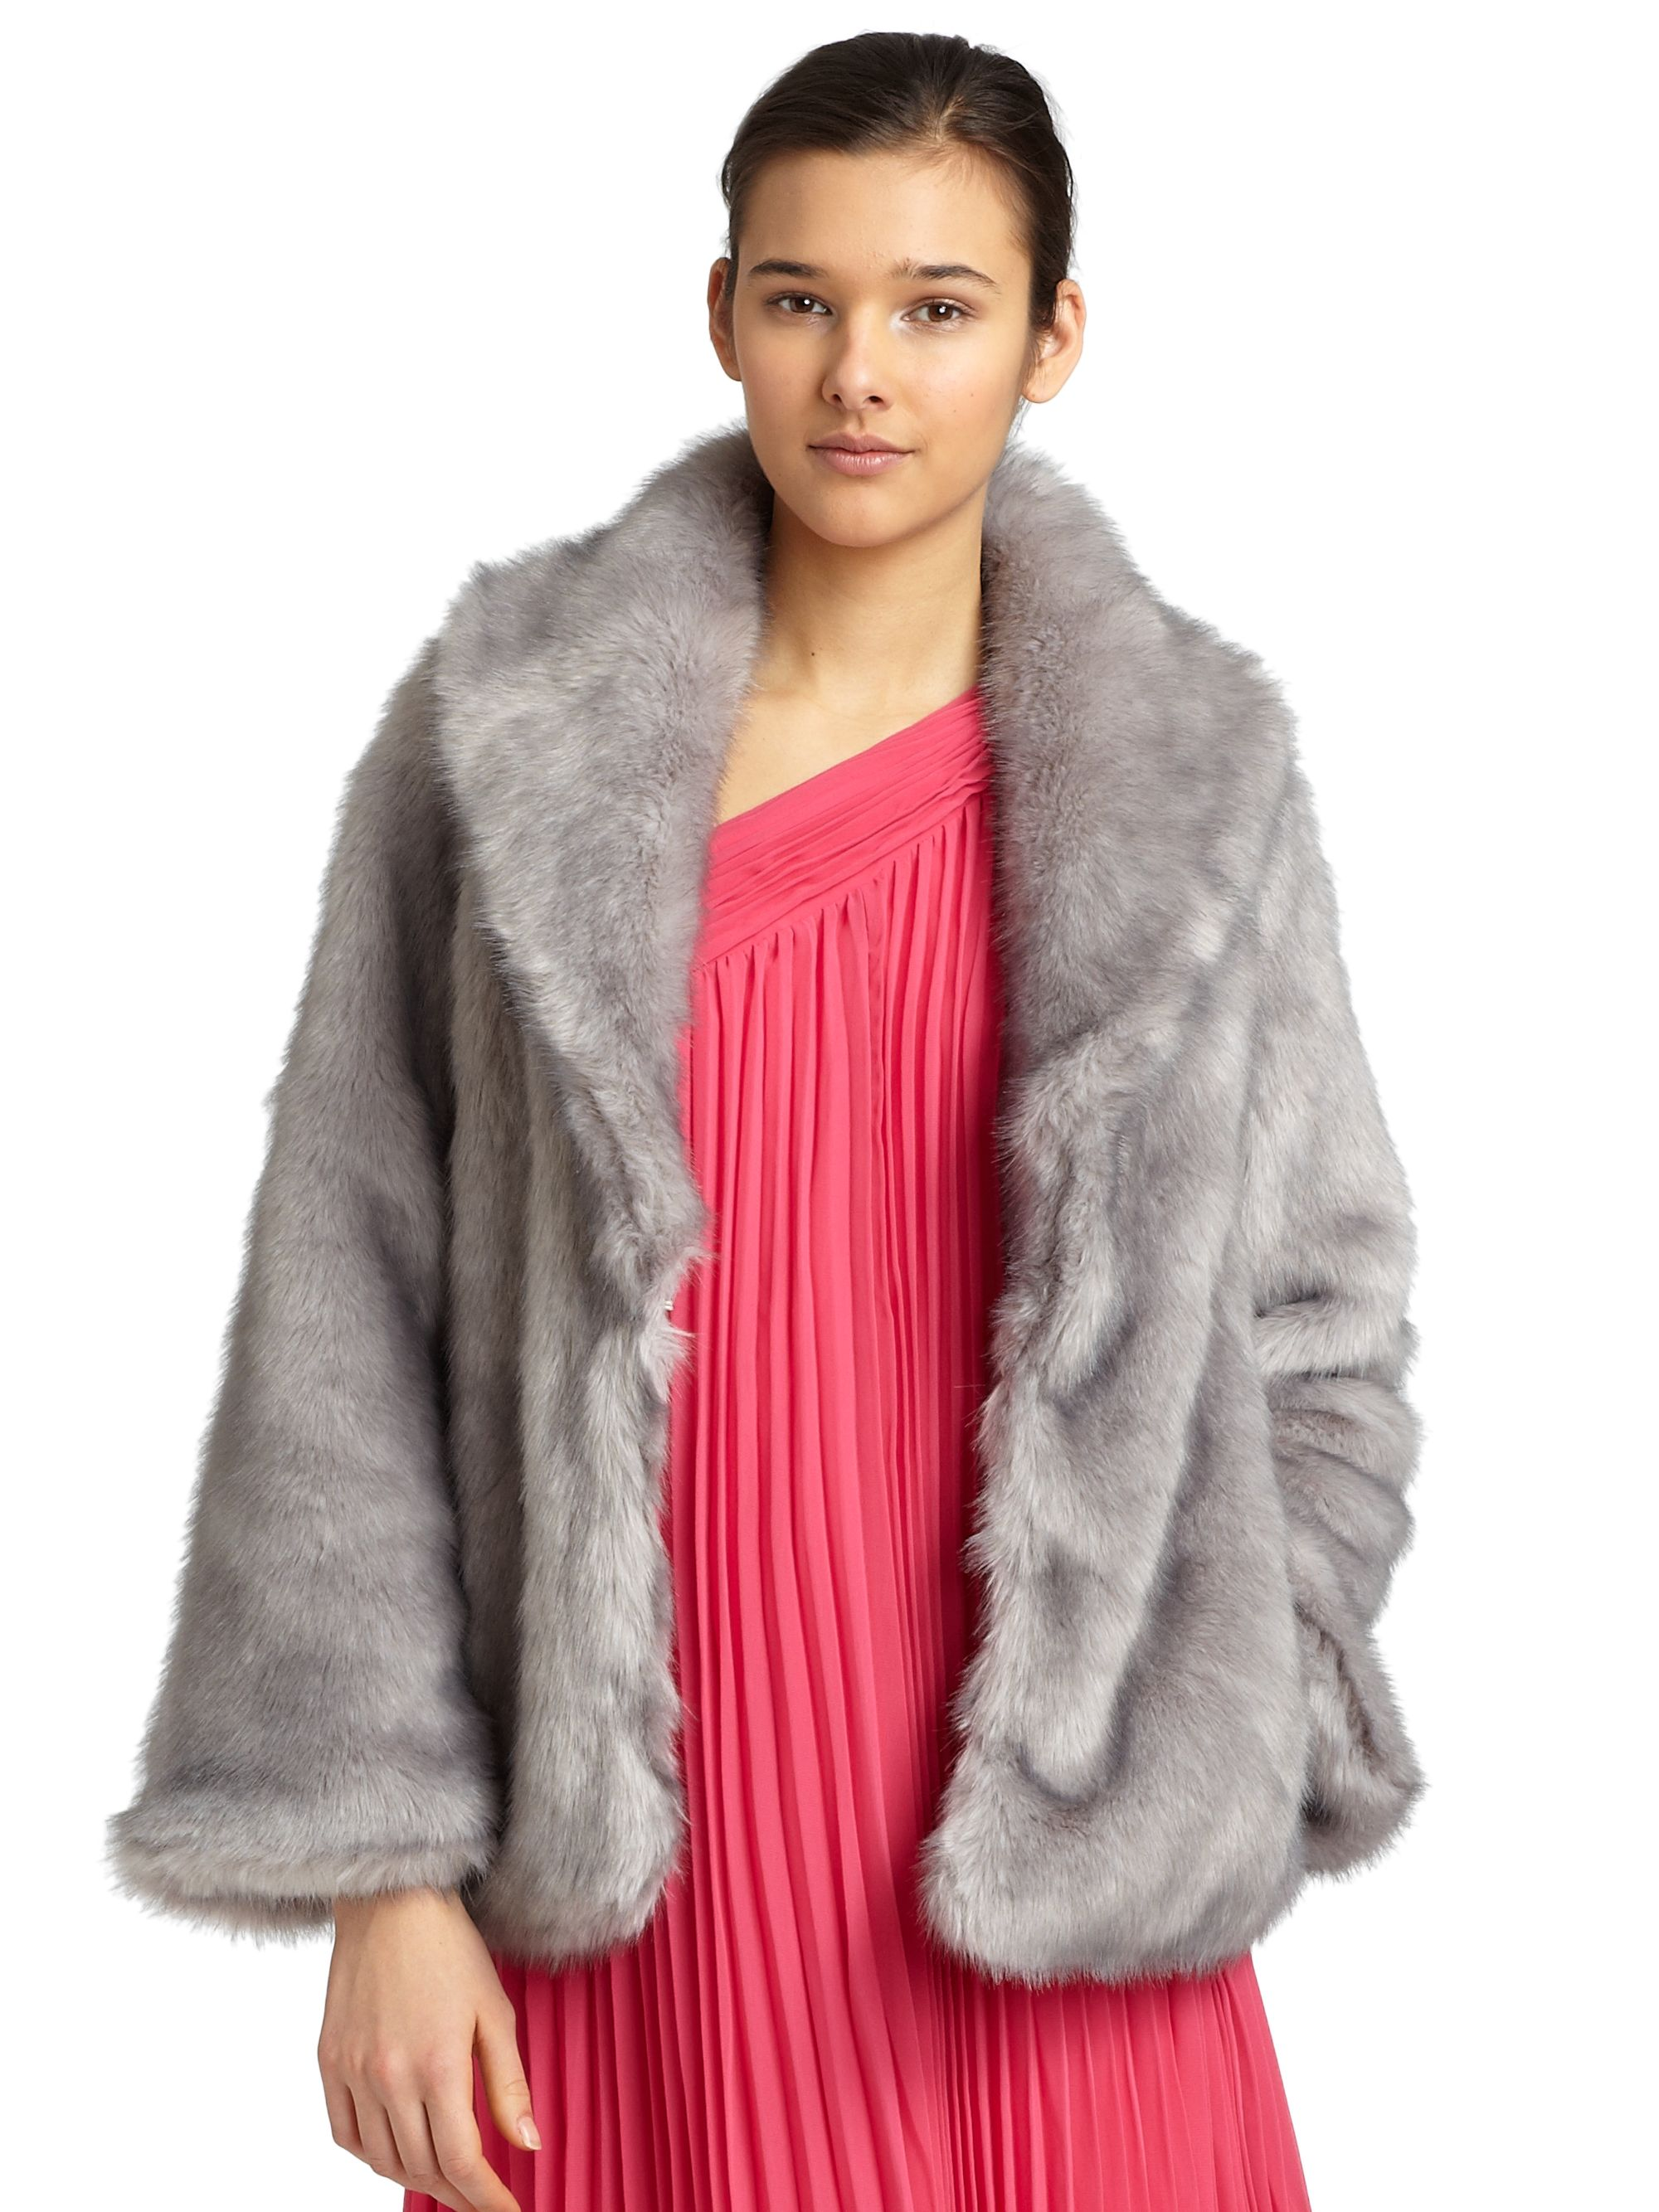 Halston Faux Fur Coat in Gray | Lyst